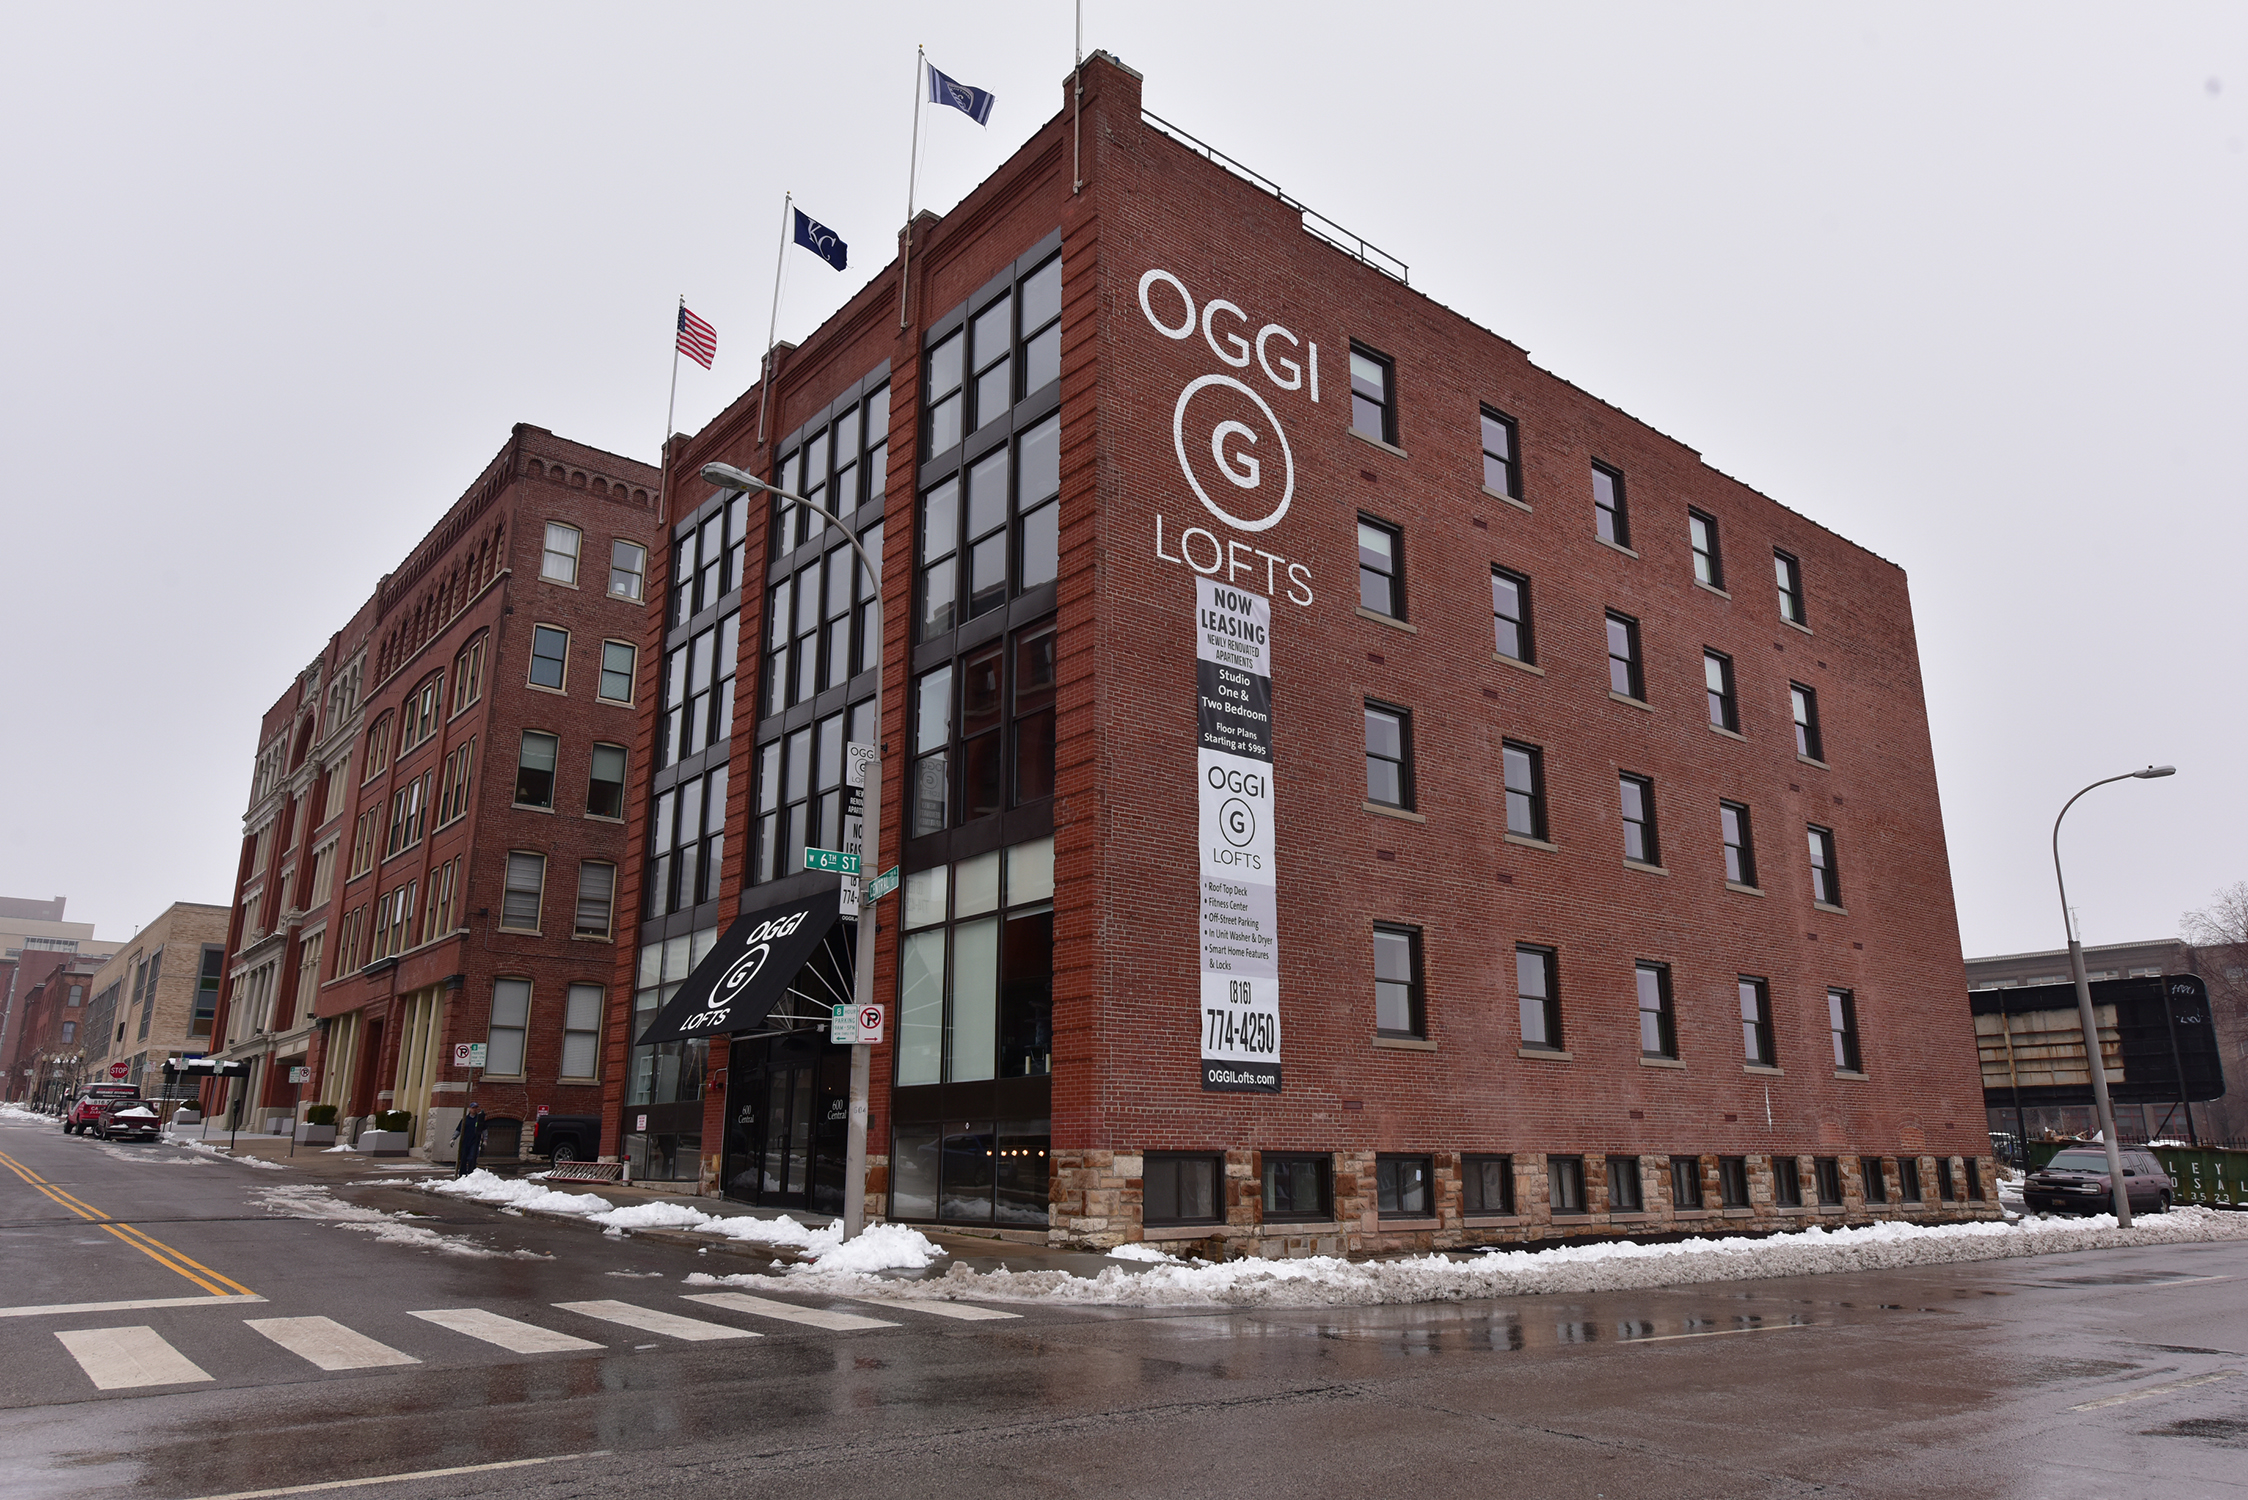 Outside view of Ogee Lofts